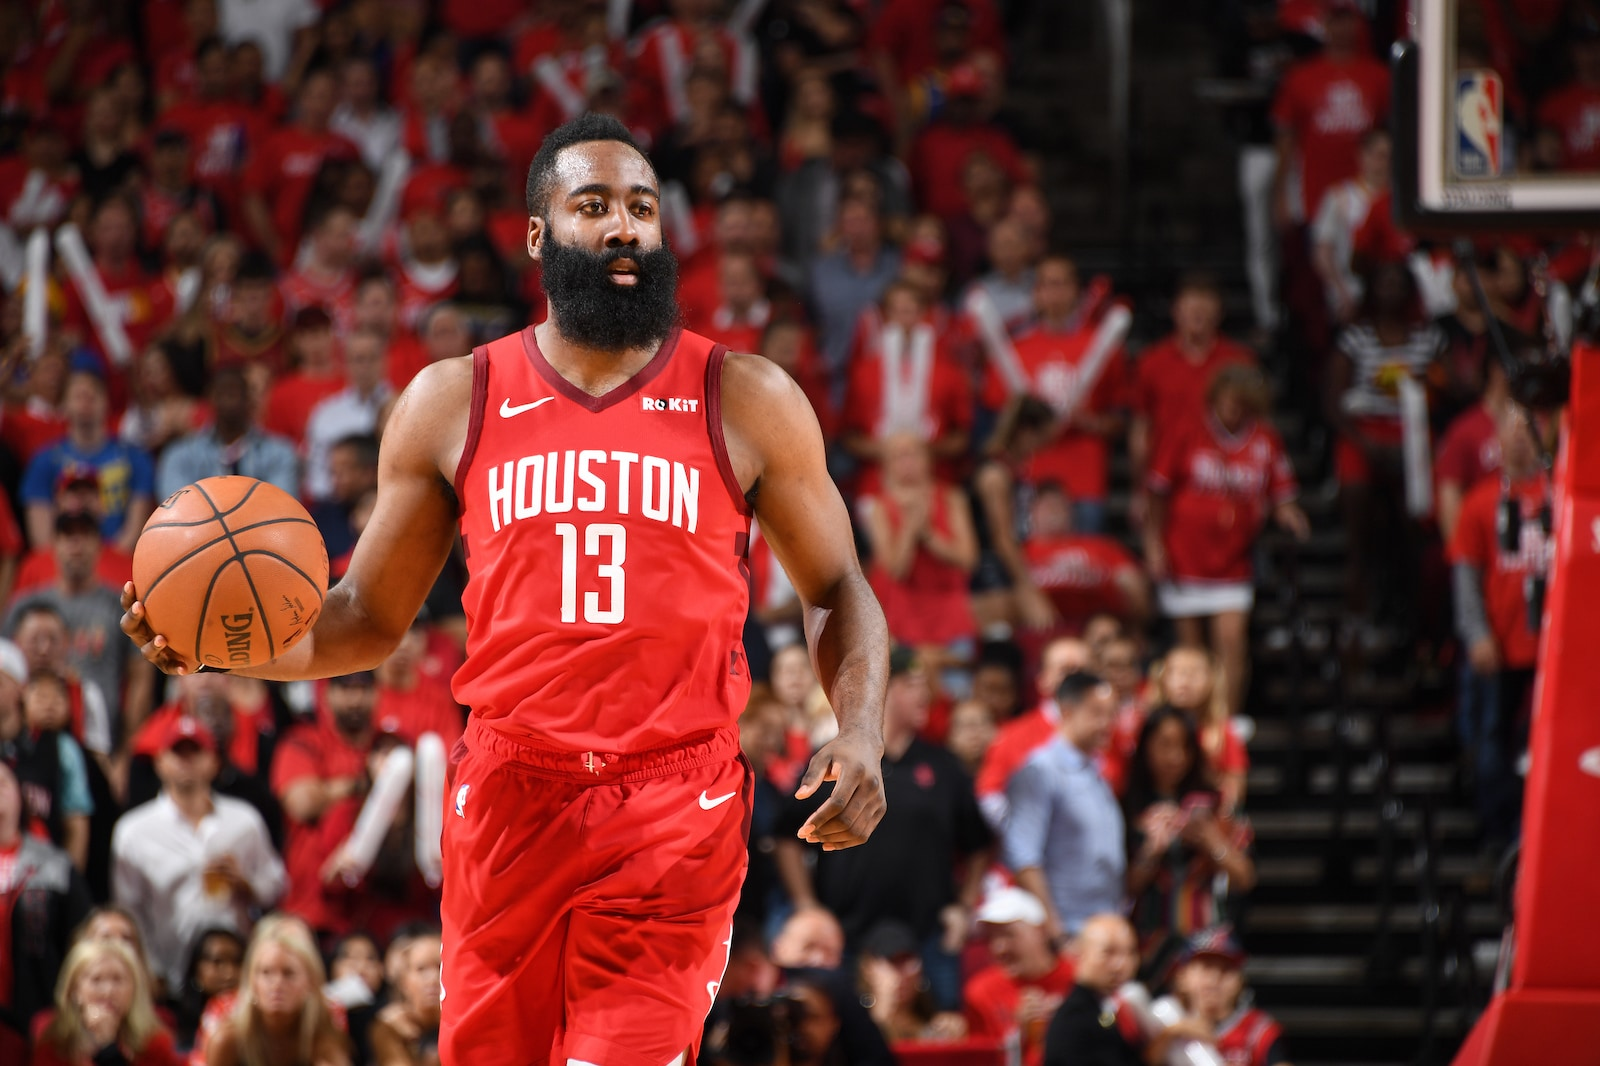 James Harden #13 of the Houston Rockets handles the ball against the Golden State Warriors during Game Six of the Western Conference Semifinals of the 2019 NBA Playoffs on May 10, 2019 at the Toyota Center in Houston, Texas.